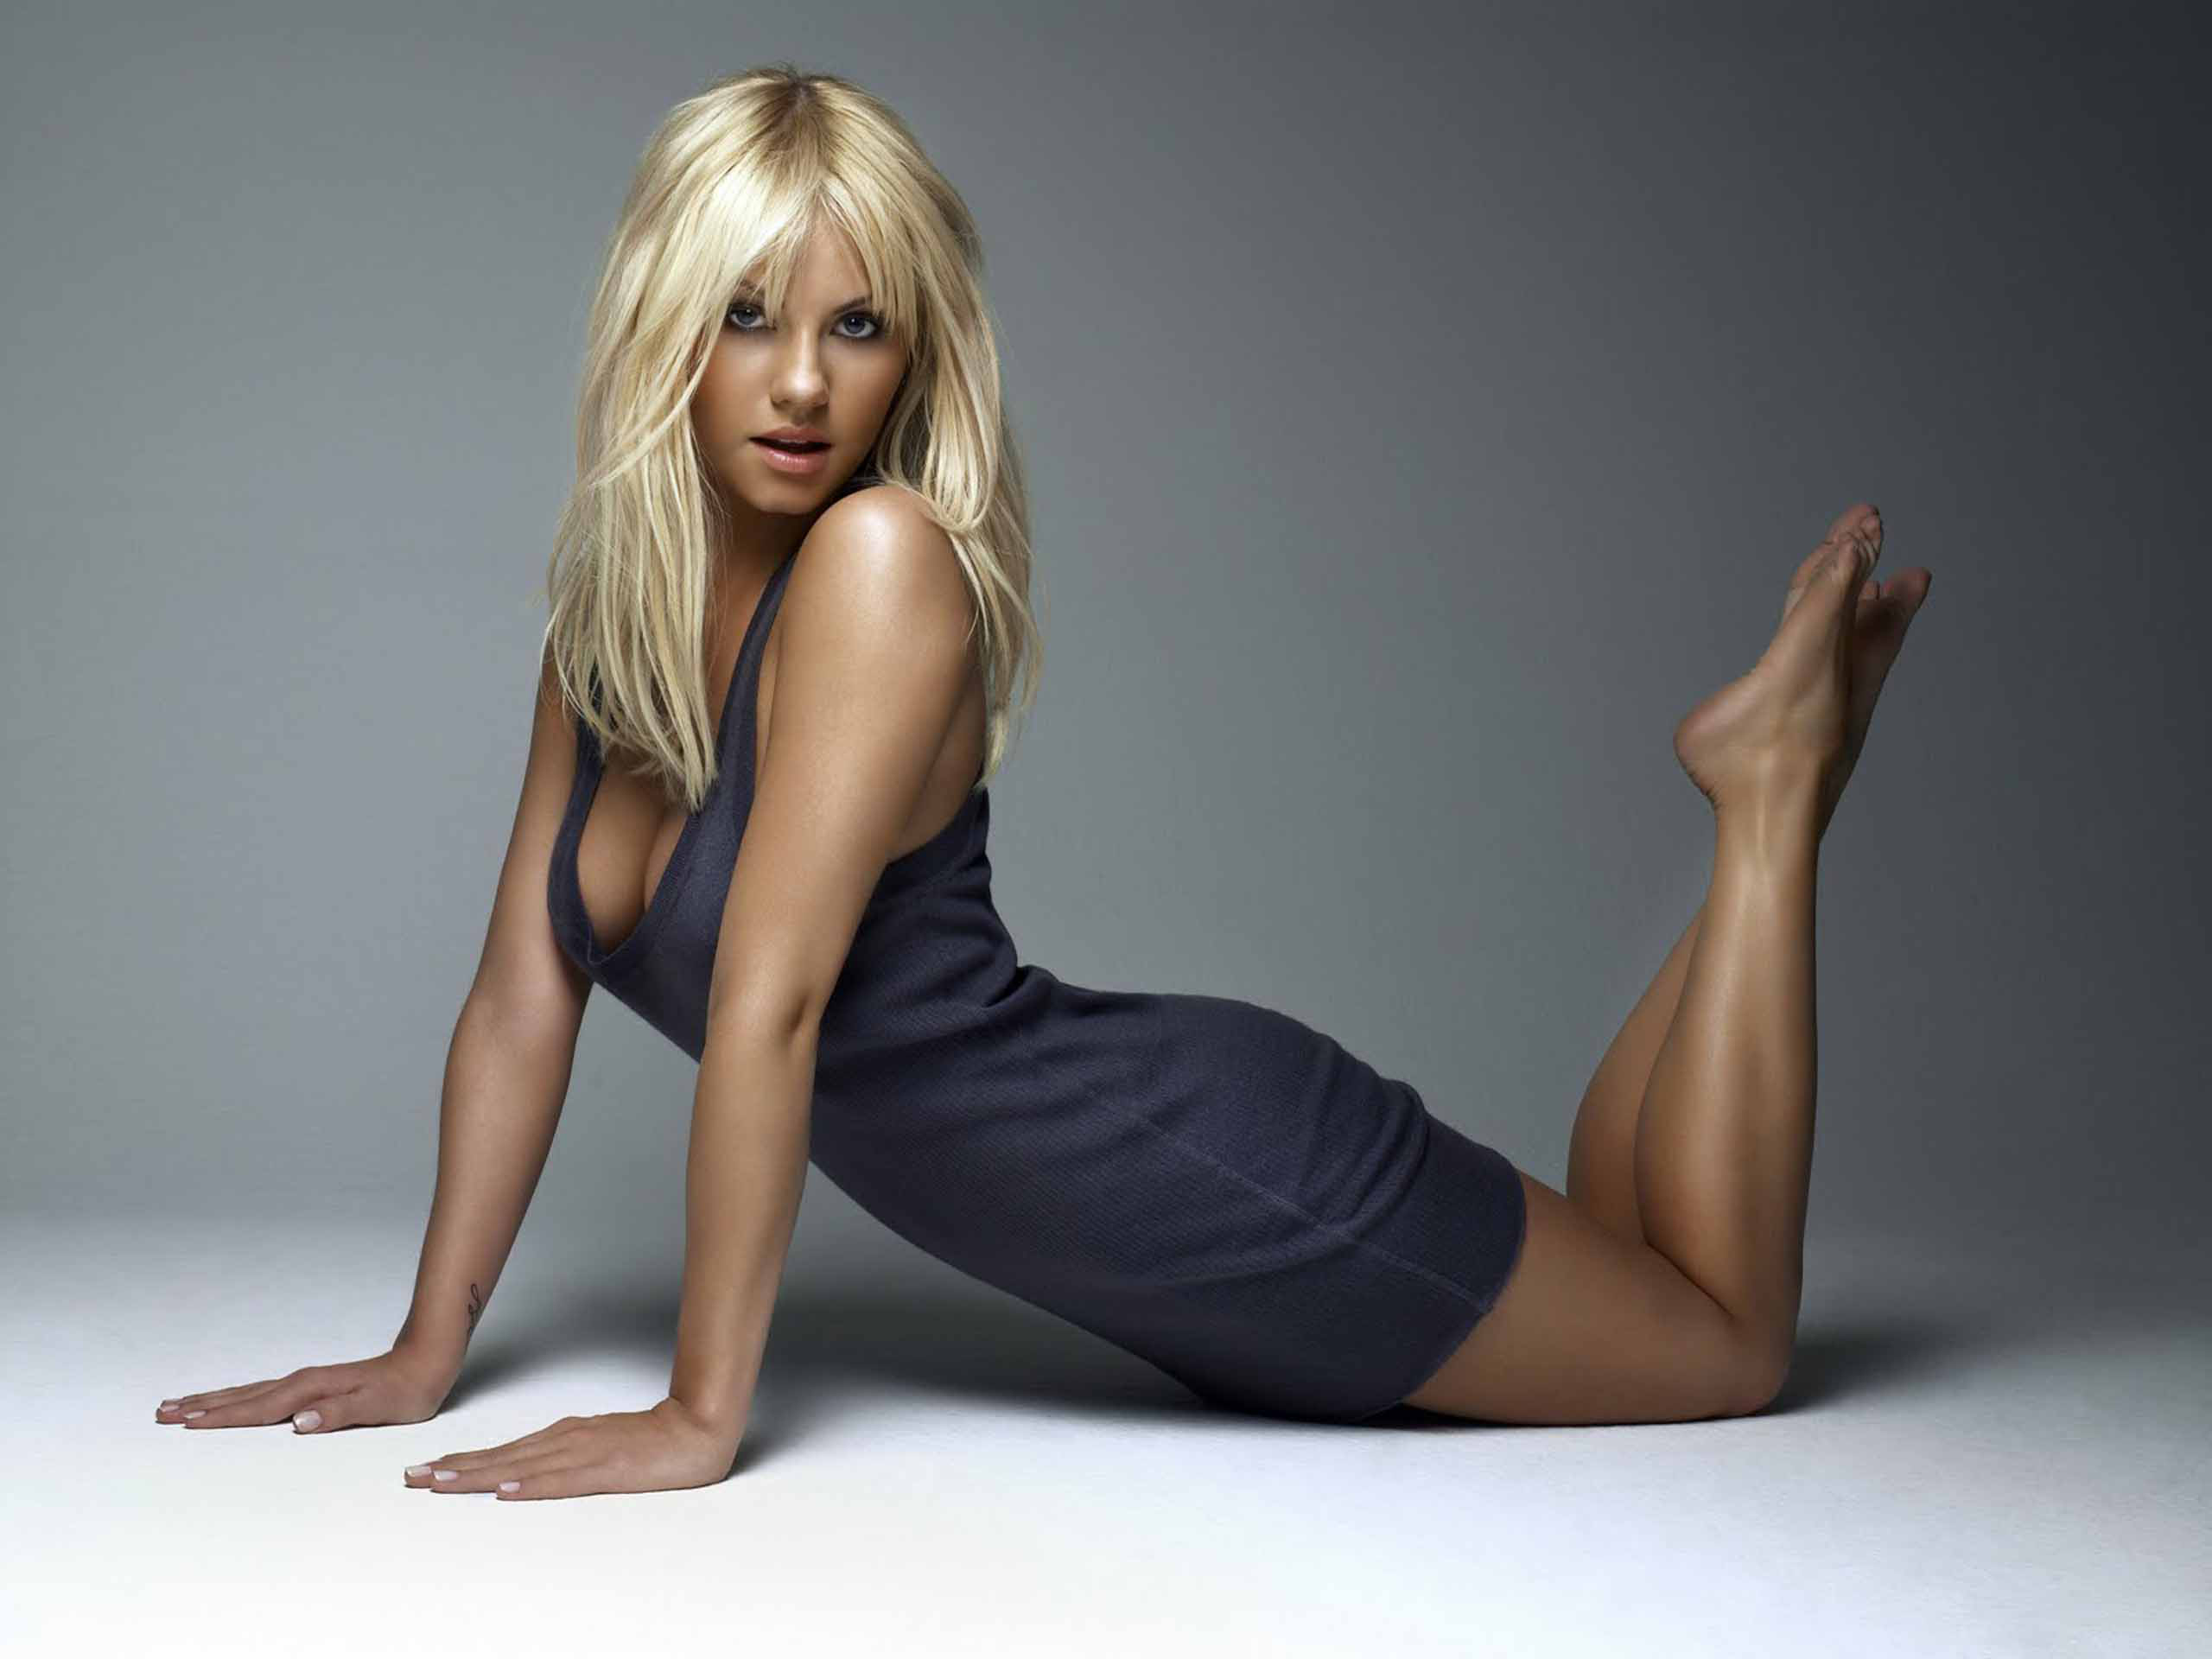 Kaley Cuoco hot pics 2560x1920